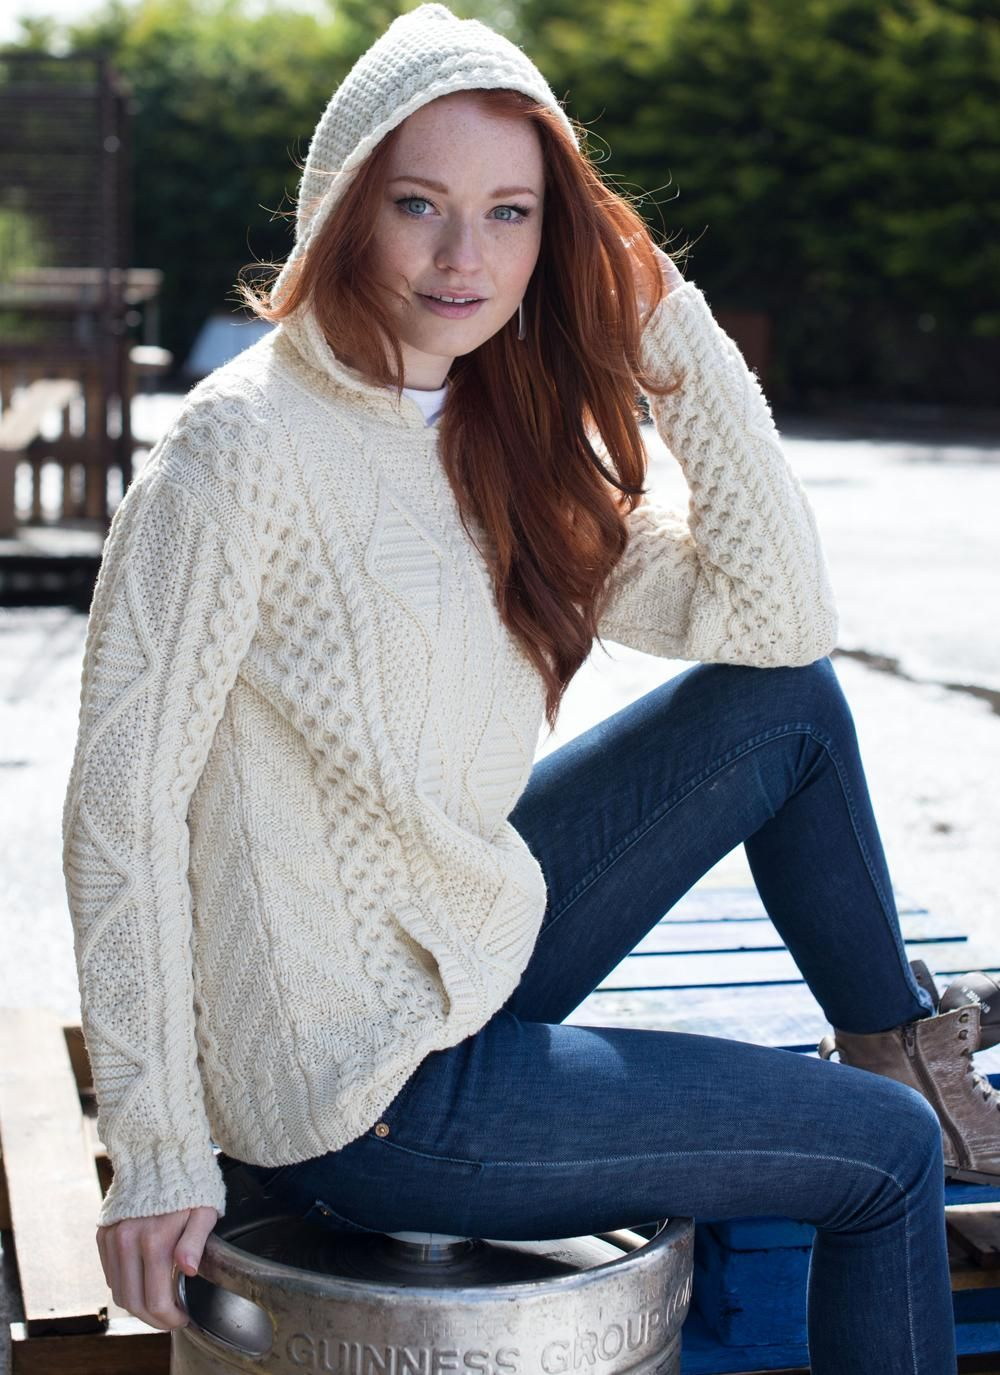 Aisling Hooded Aran Sweater - Our Aisling Hooded Aran Sweater fuses ...